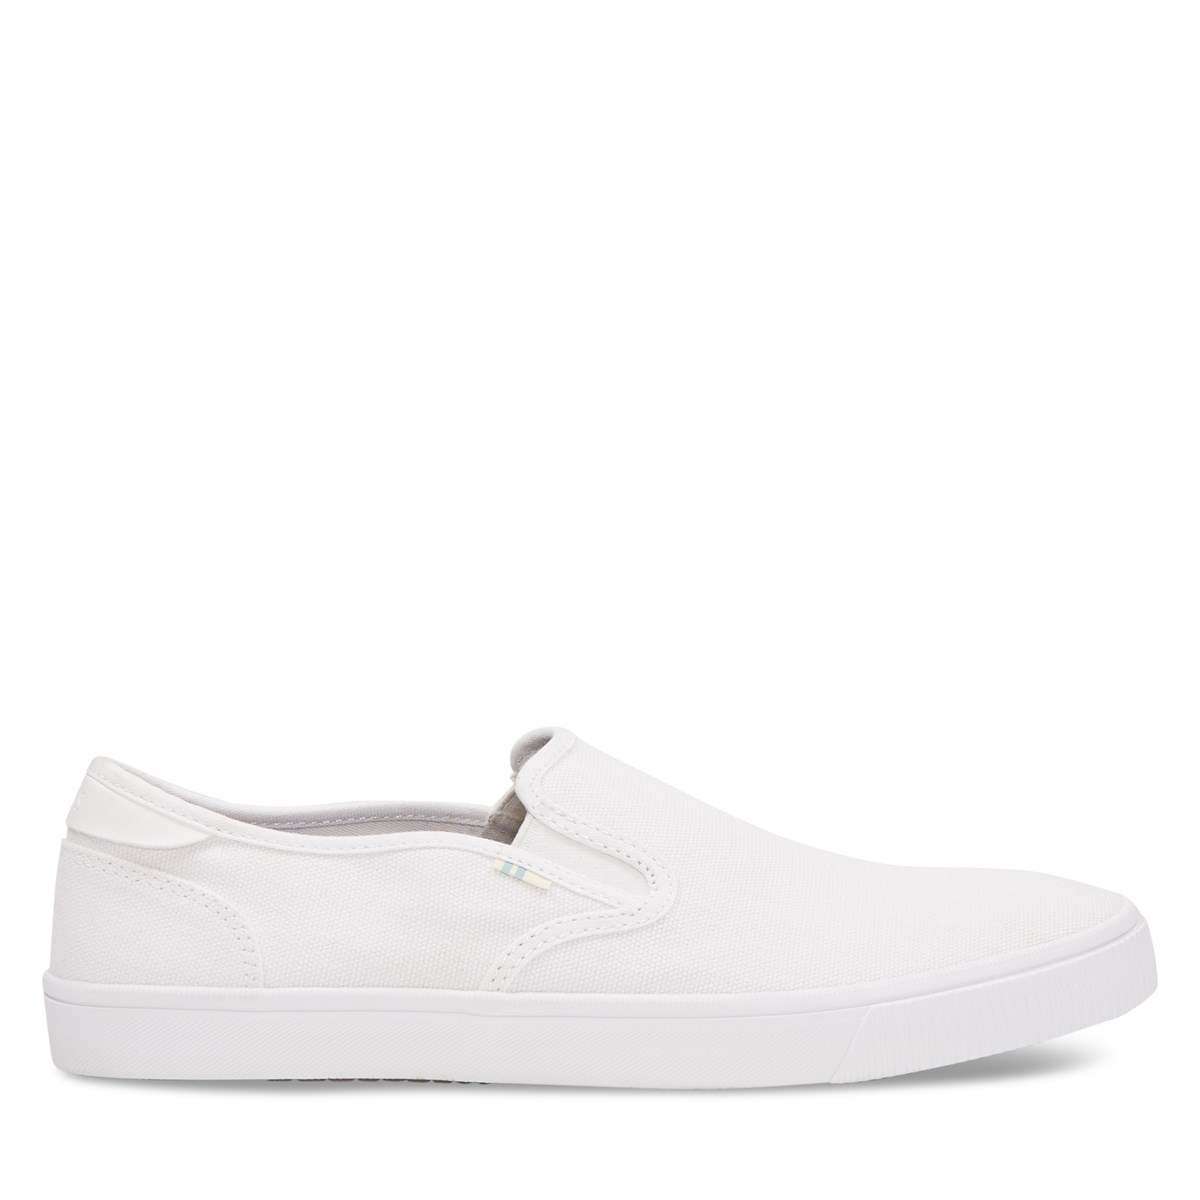 Men's Baja Slip-Ons in White